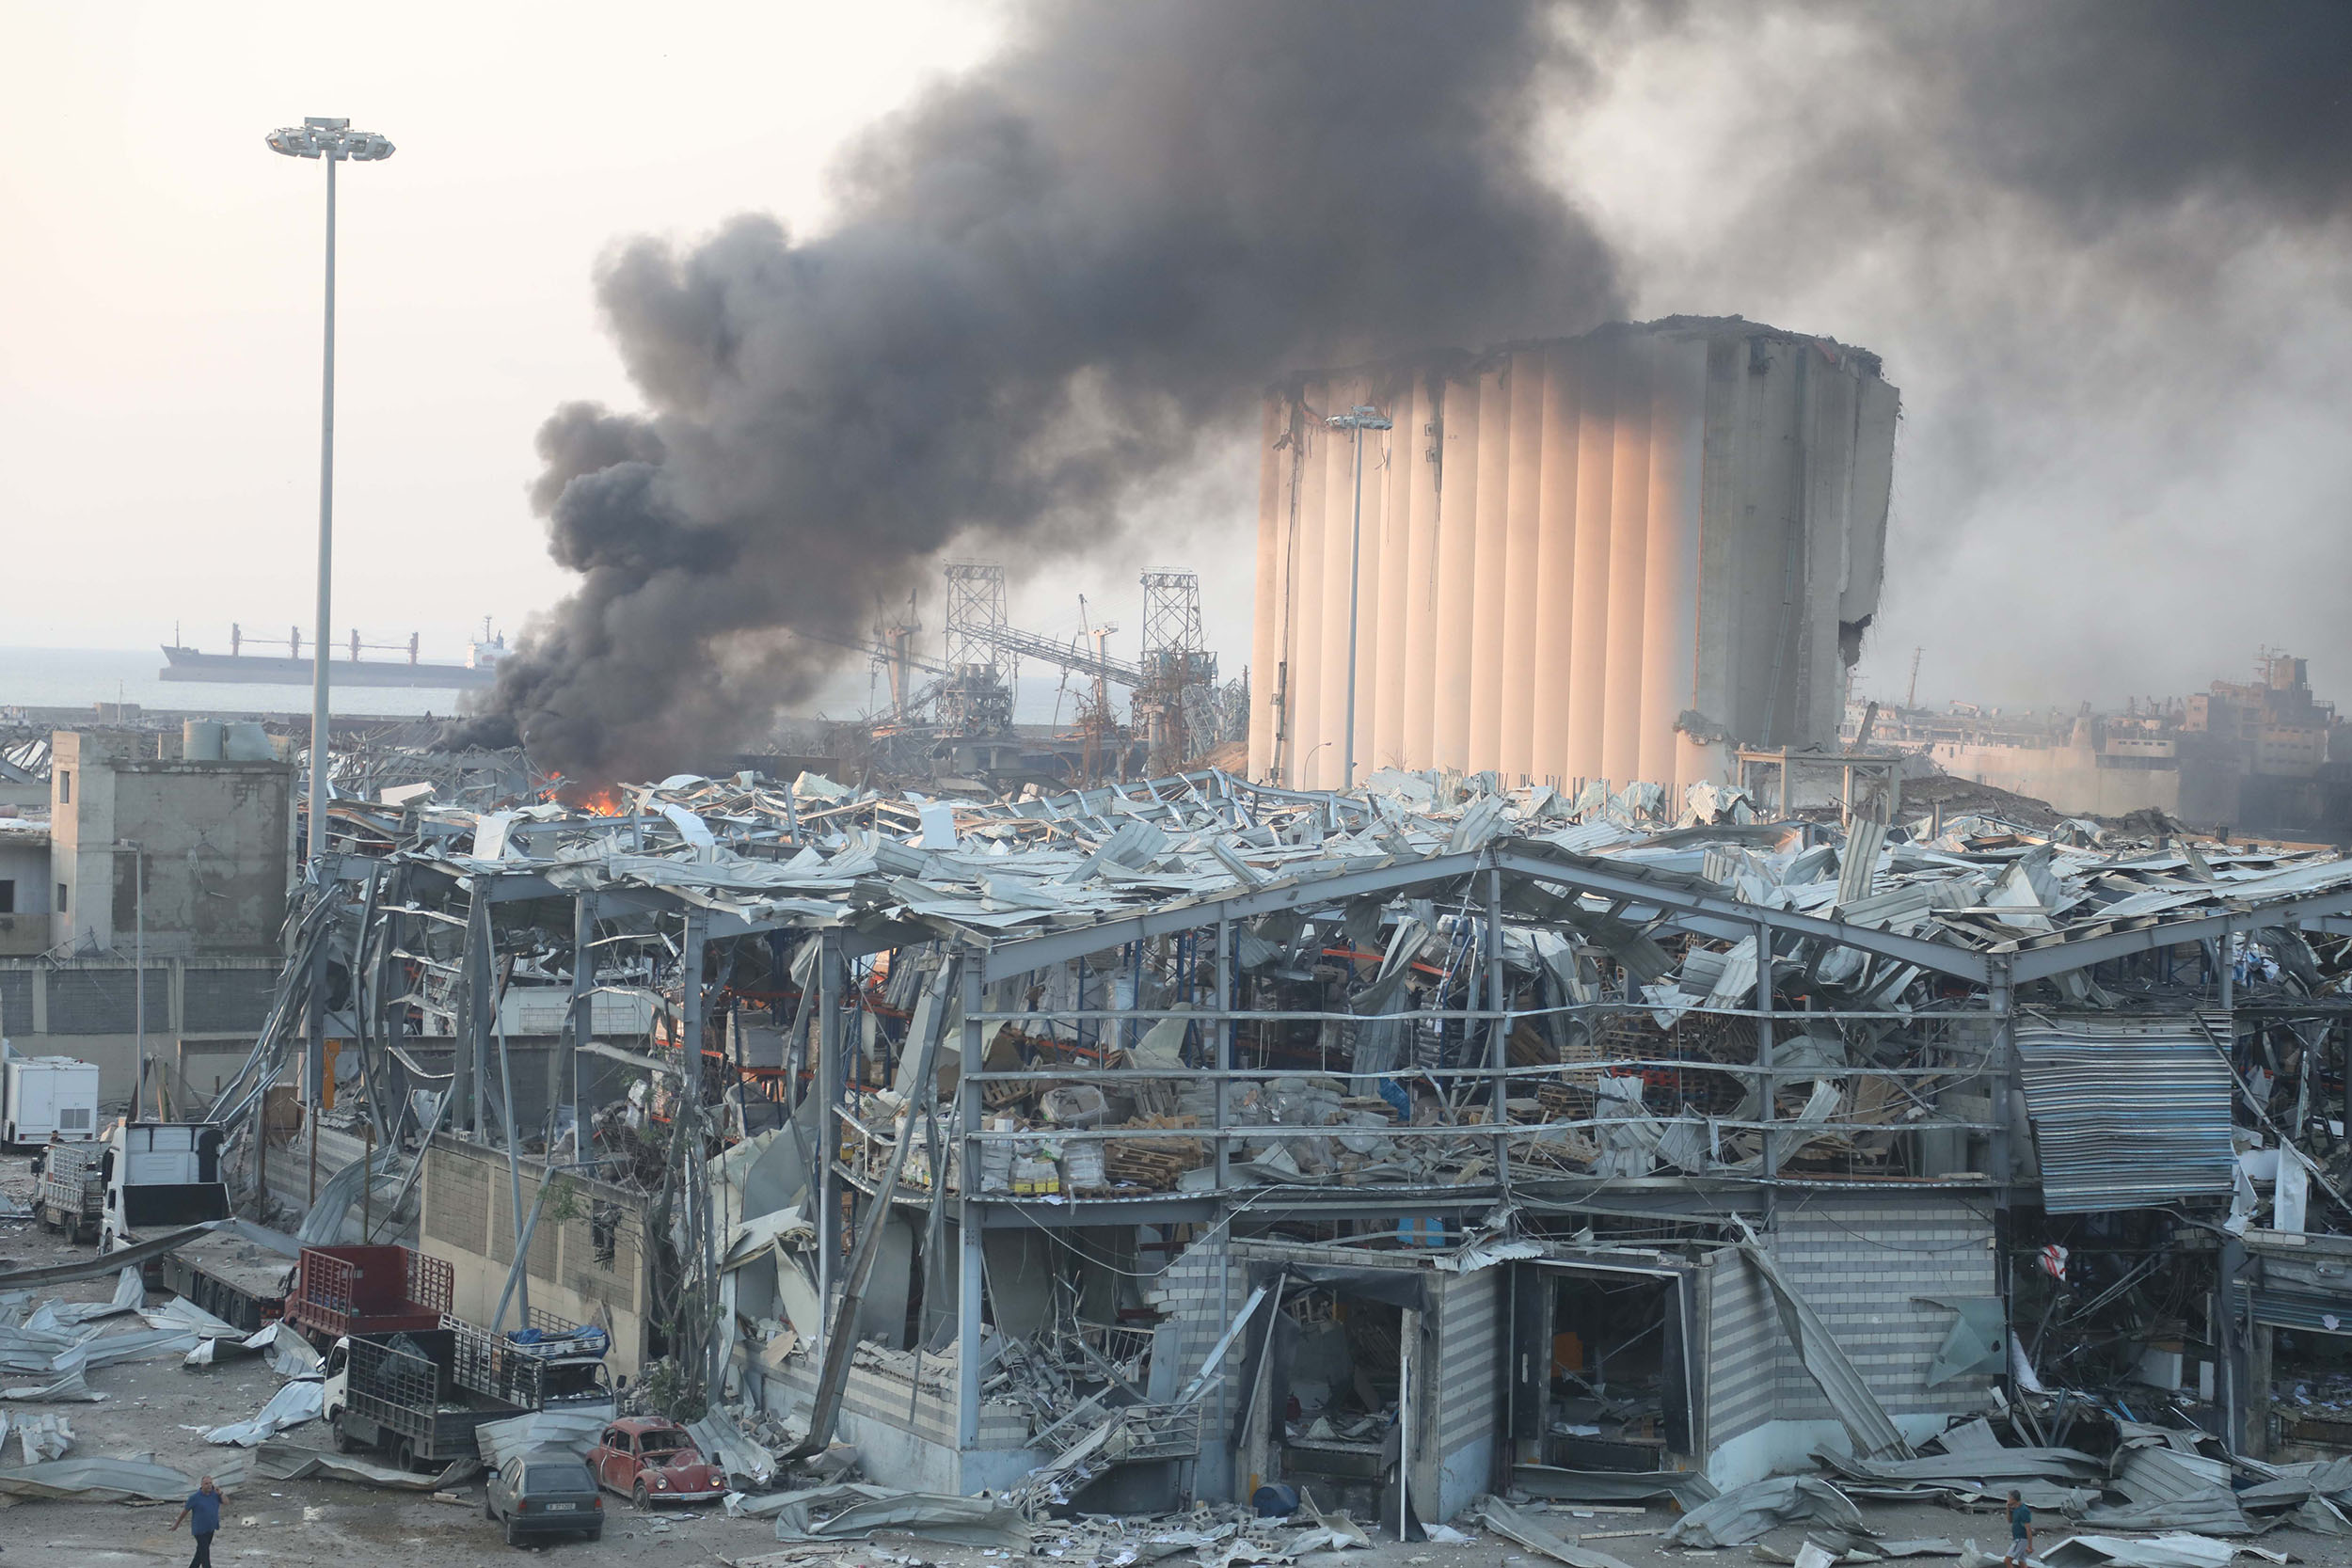 Smoke rises from an explosion site at the port of Beirut, Lebanon, on August 4.